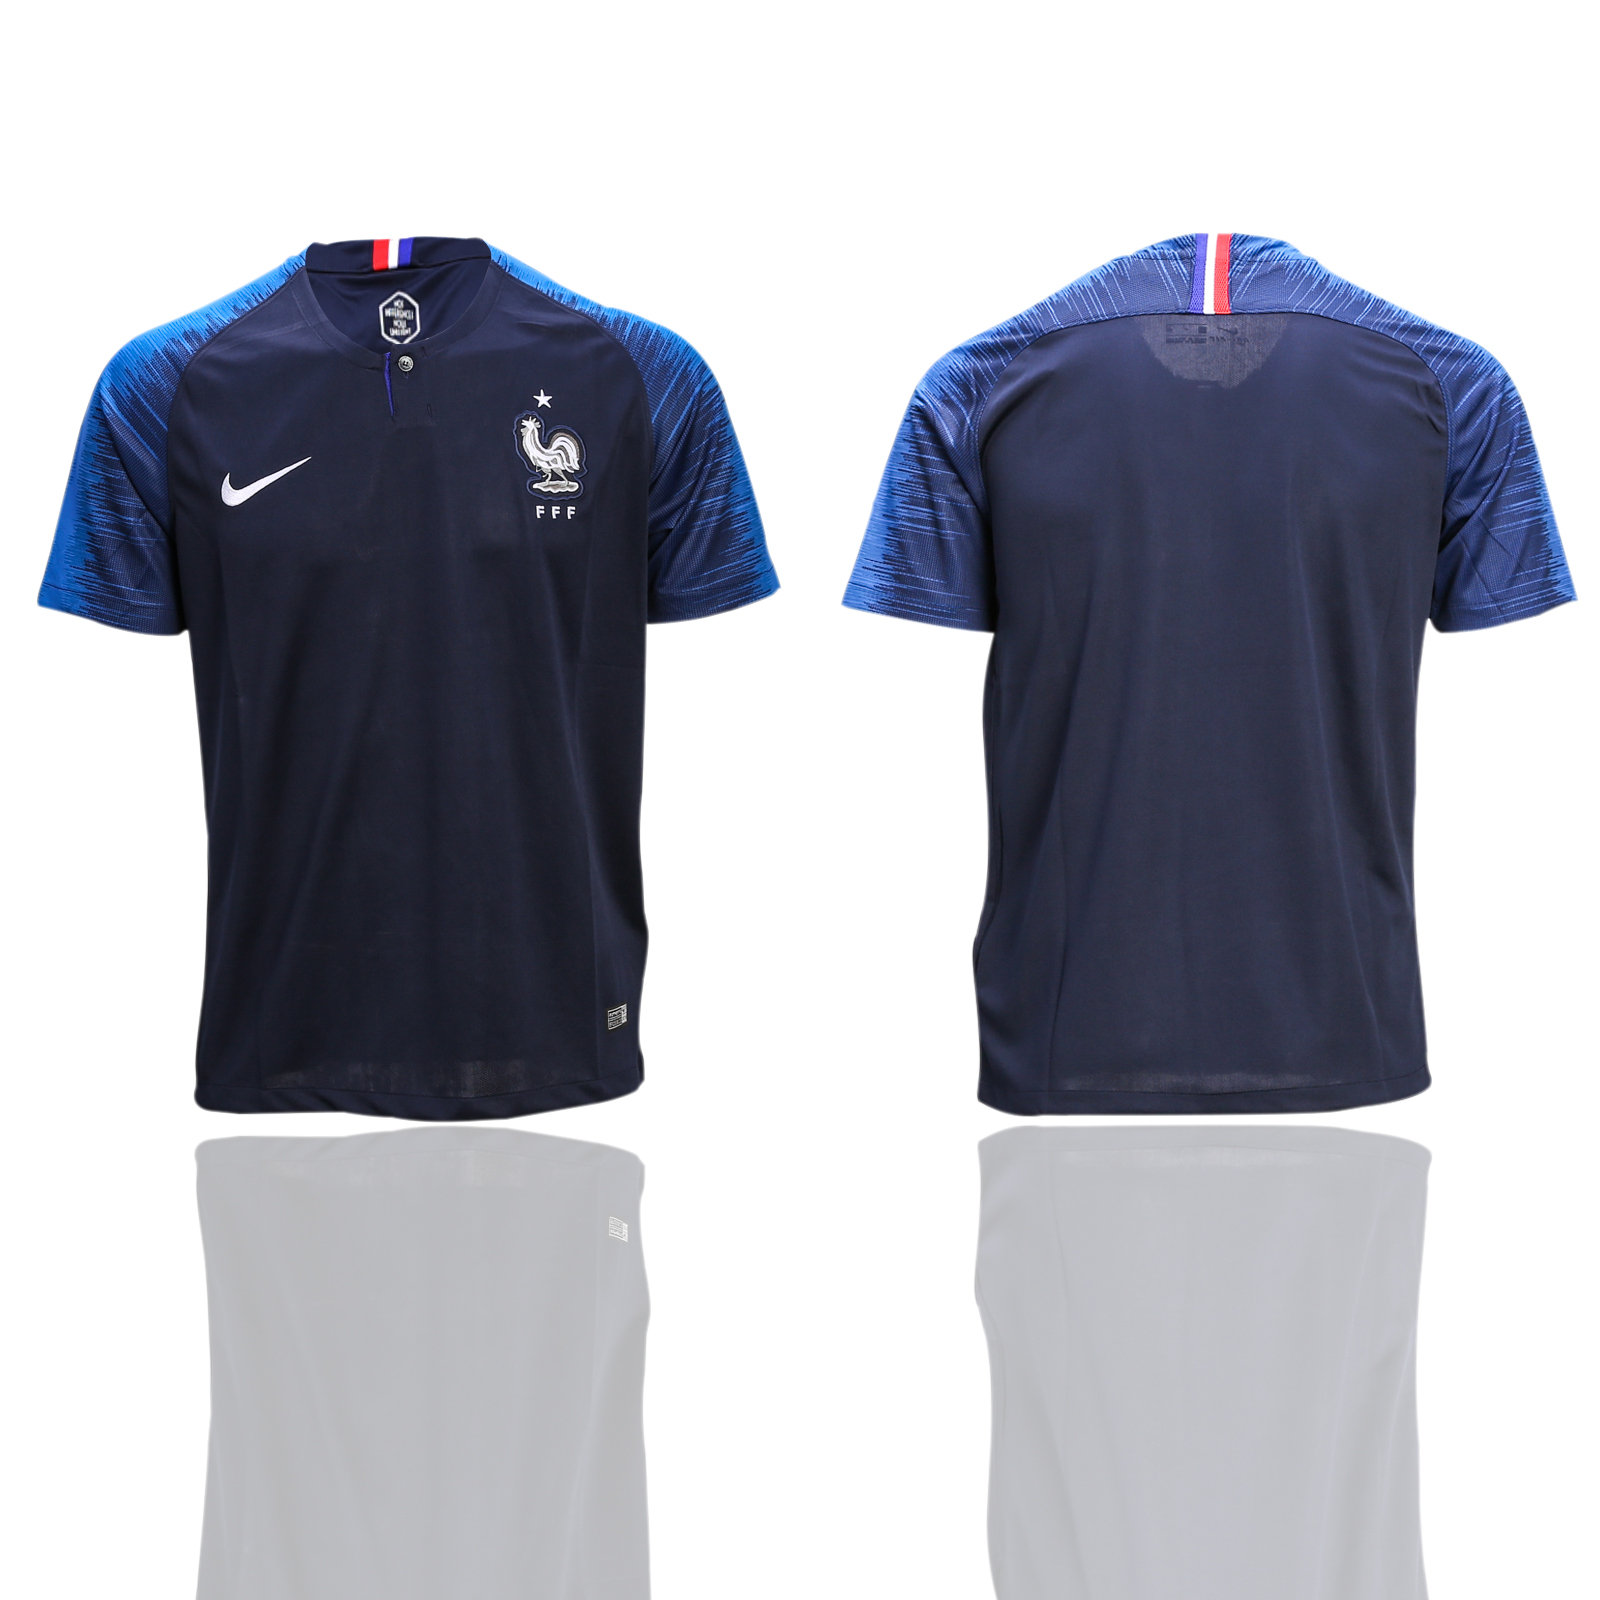 France Home 2-Star 2018 FIFA World Cup Thailand Soccer Jersey